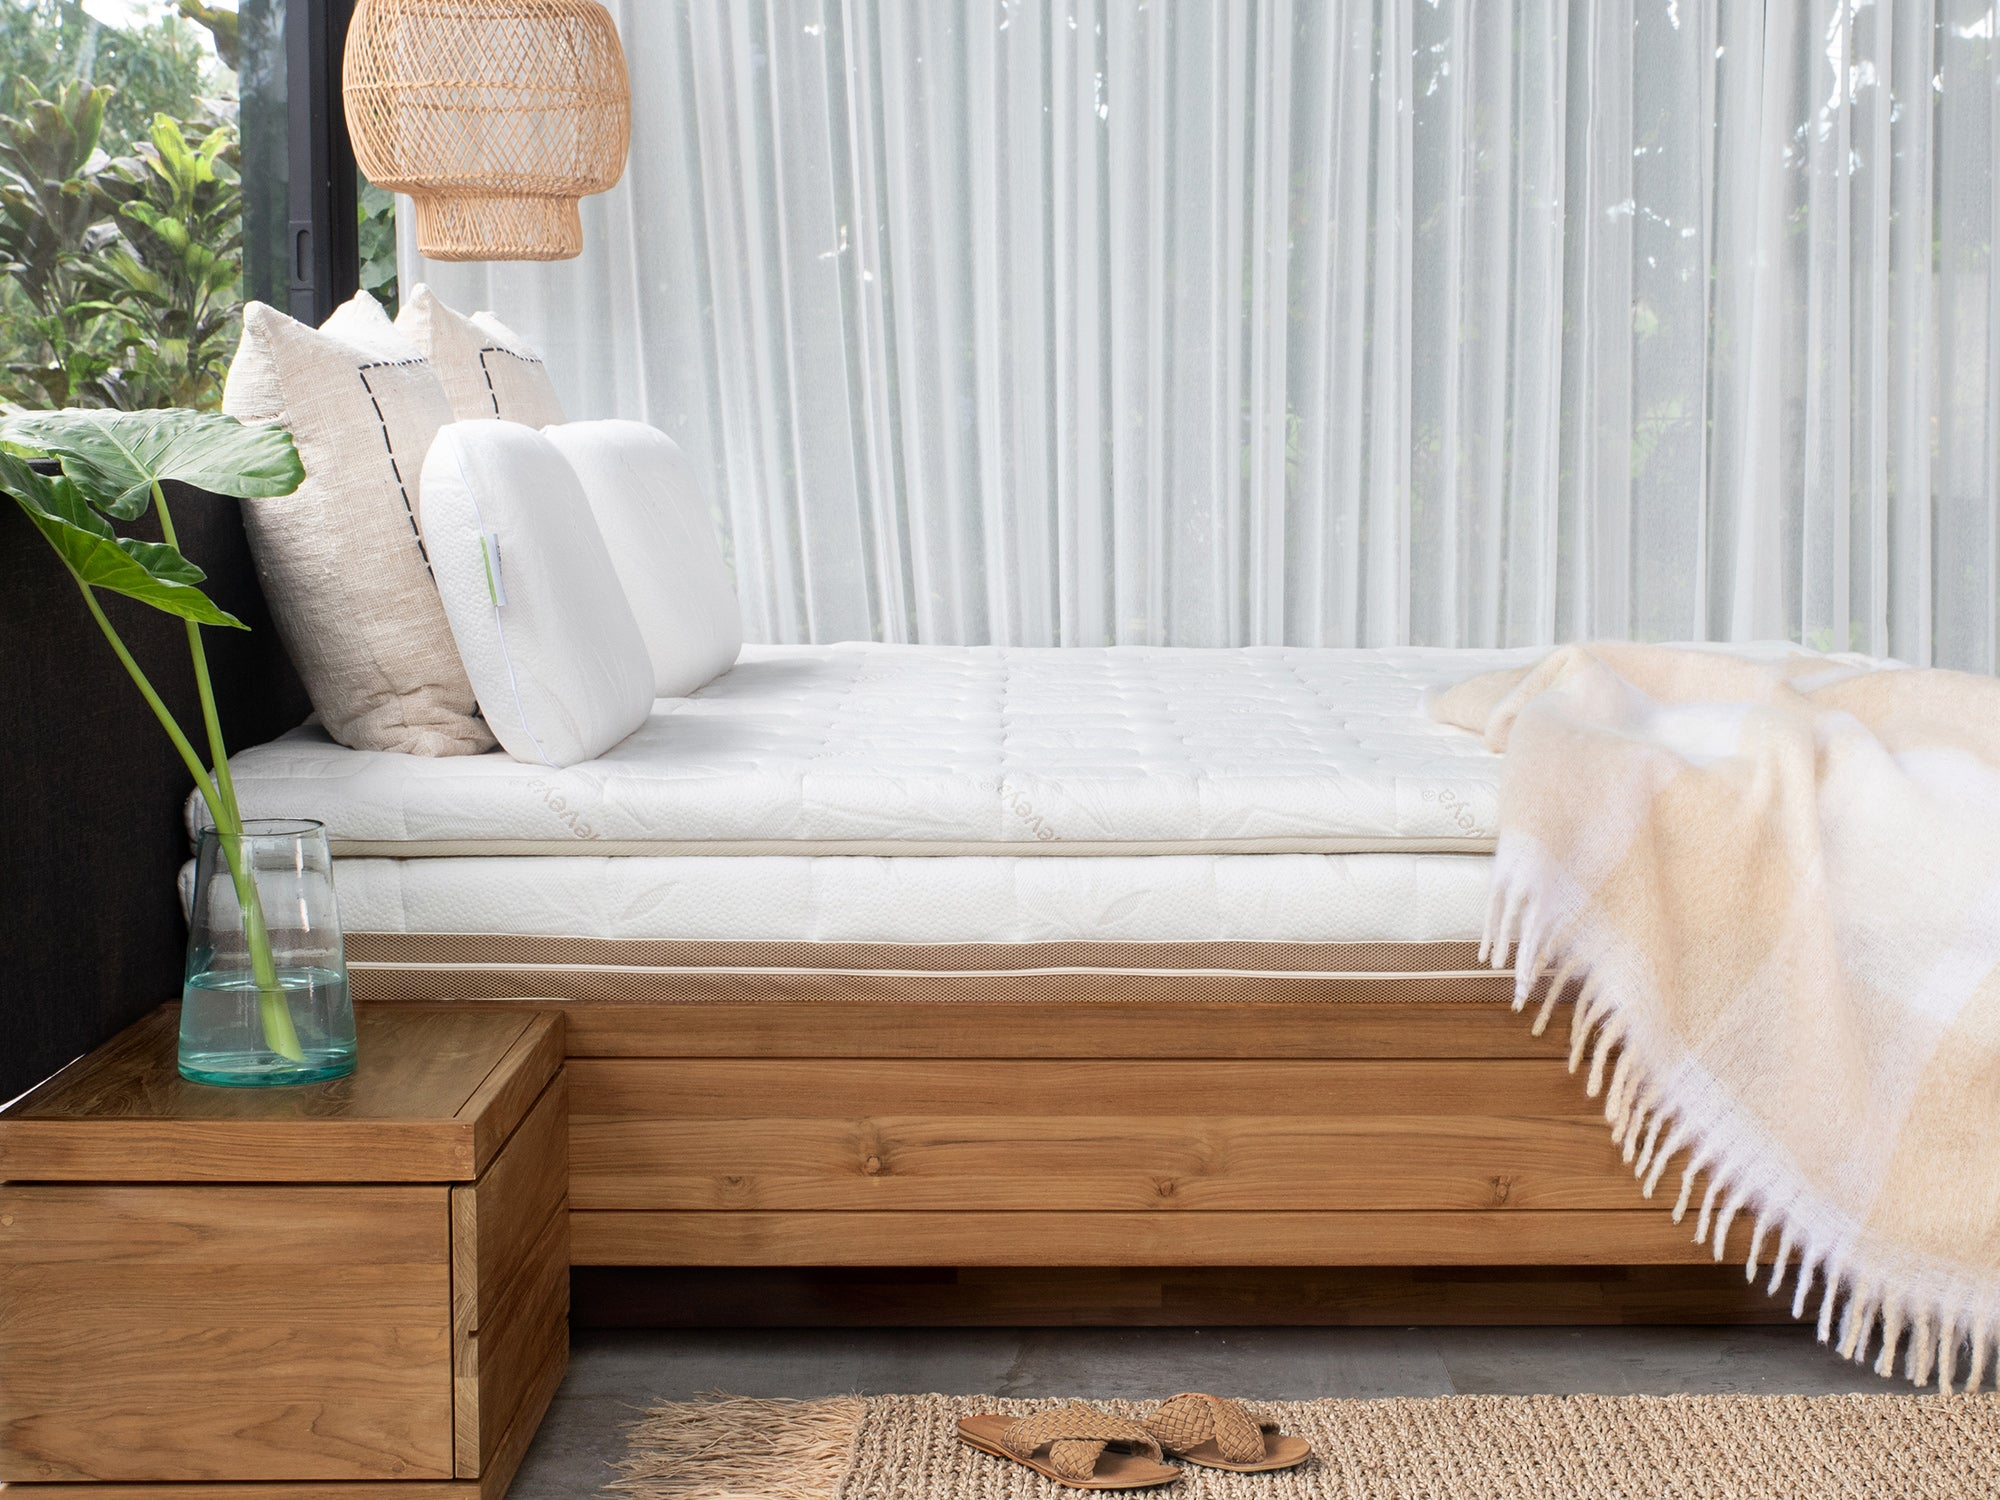 Heveya organic latex mattress 3